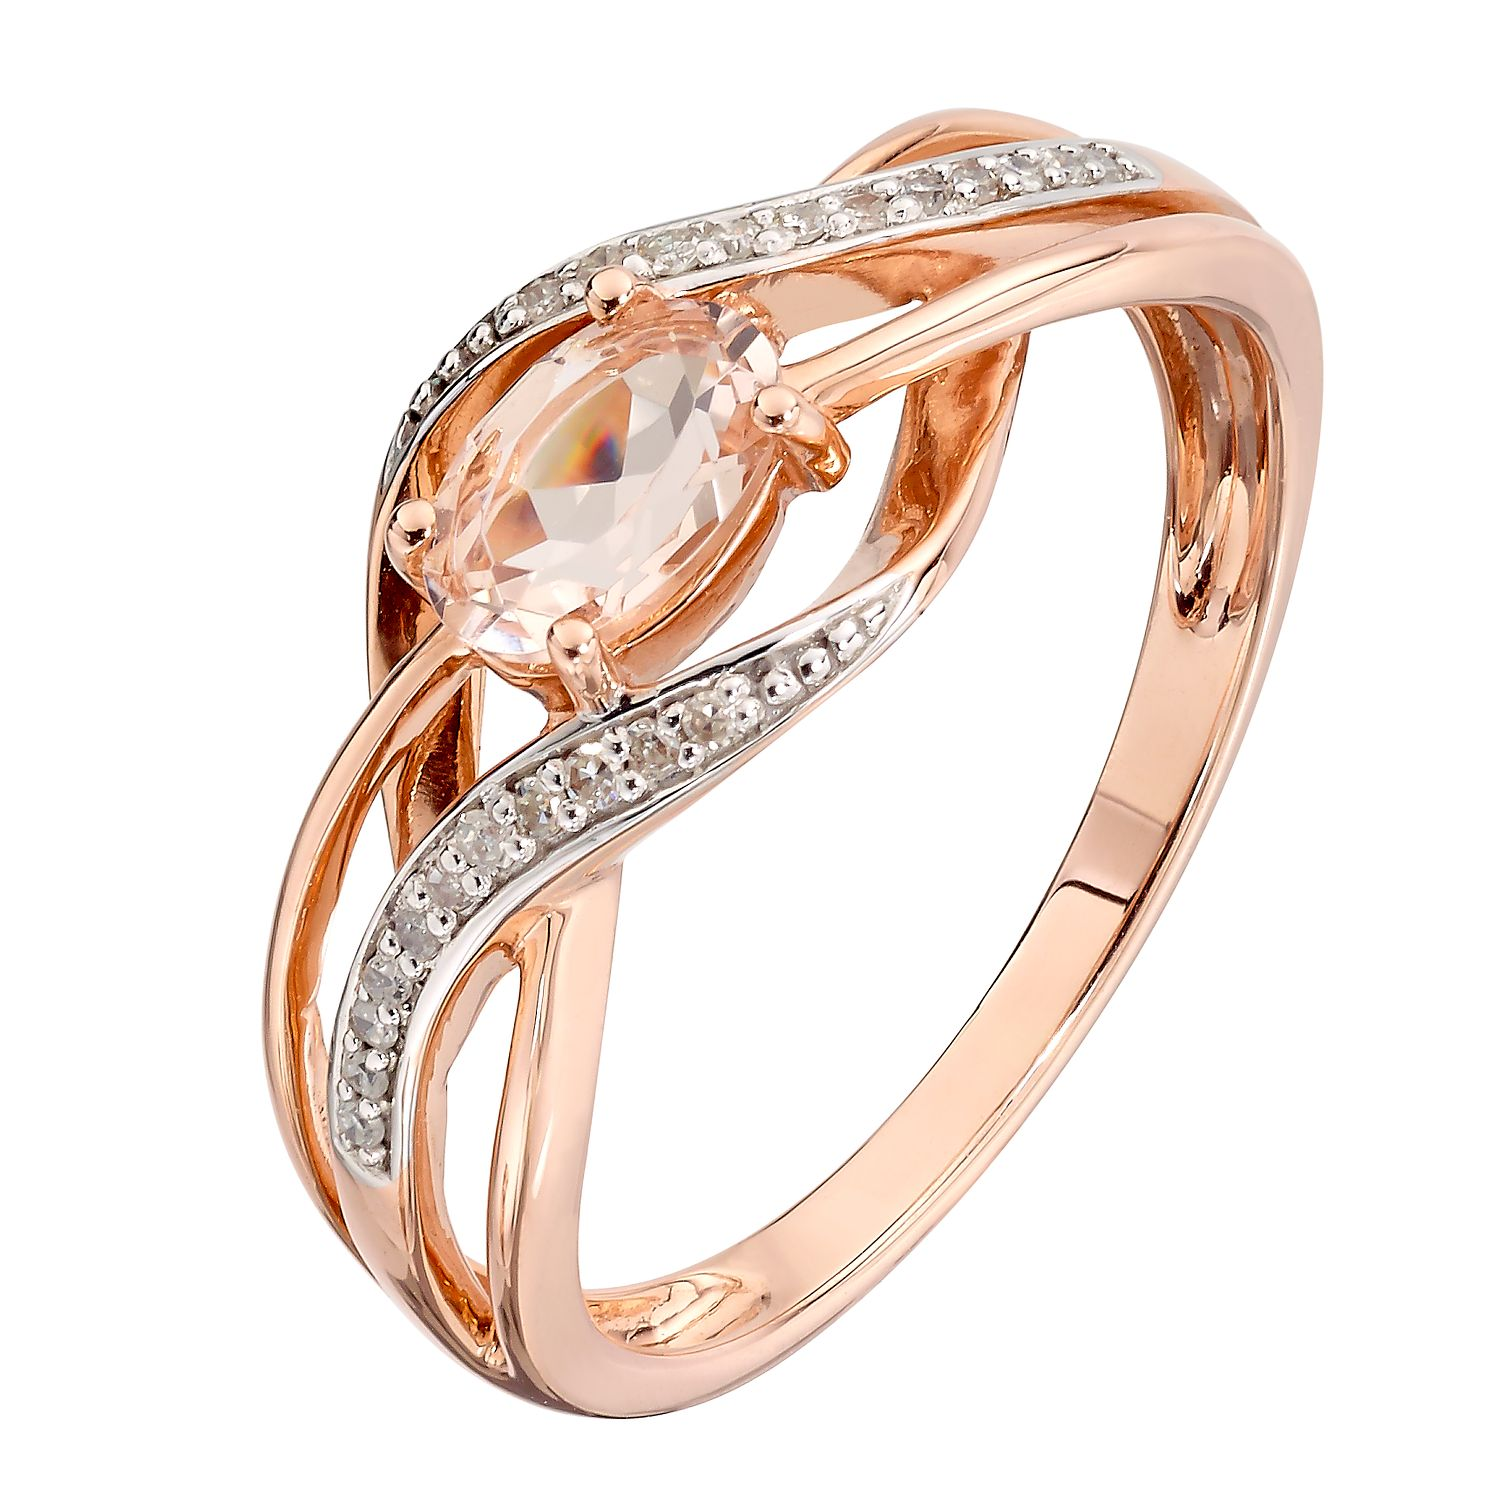 rings rose d number ring samuel gold diamond cherished and h webstore twist product solitaire